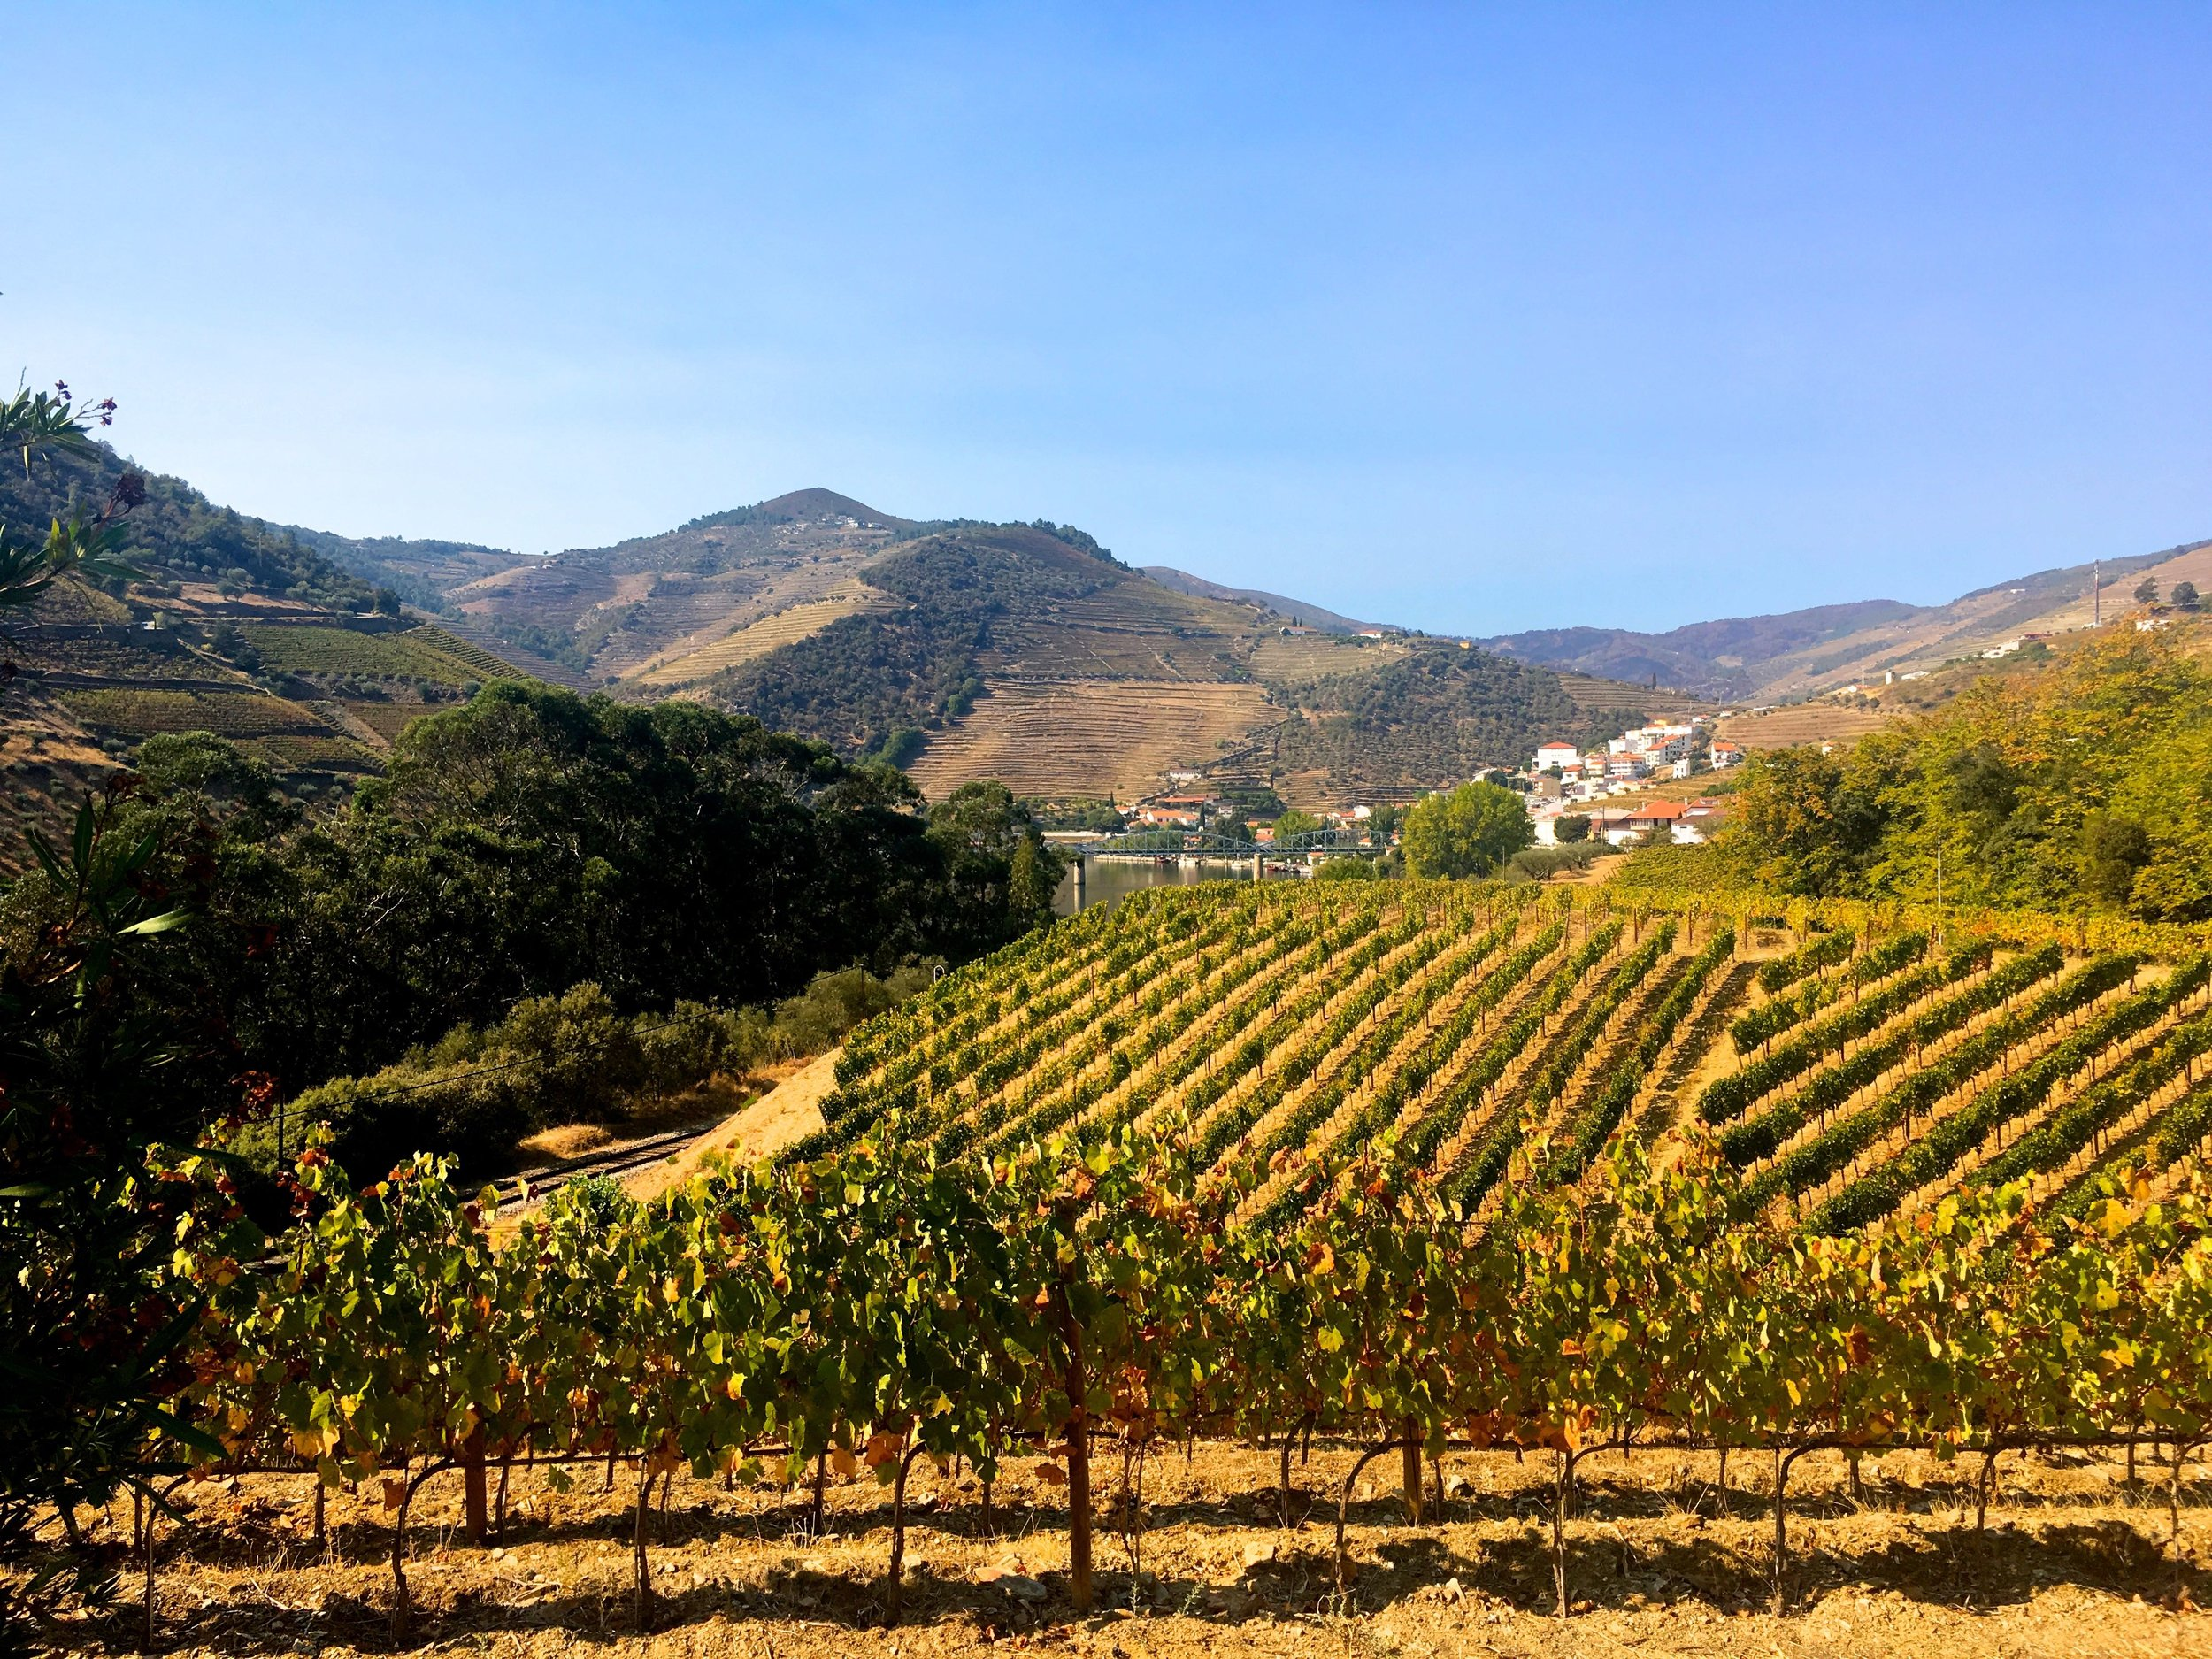 A view over the vineyards at Quinta da Bomfim in the Douro valley